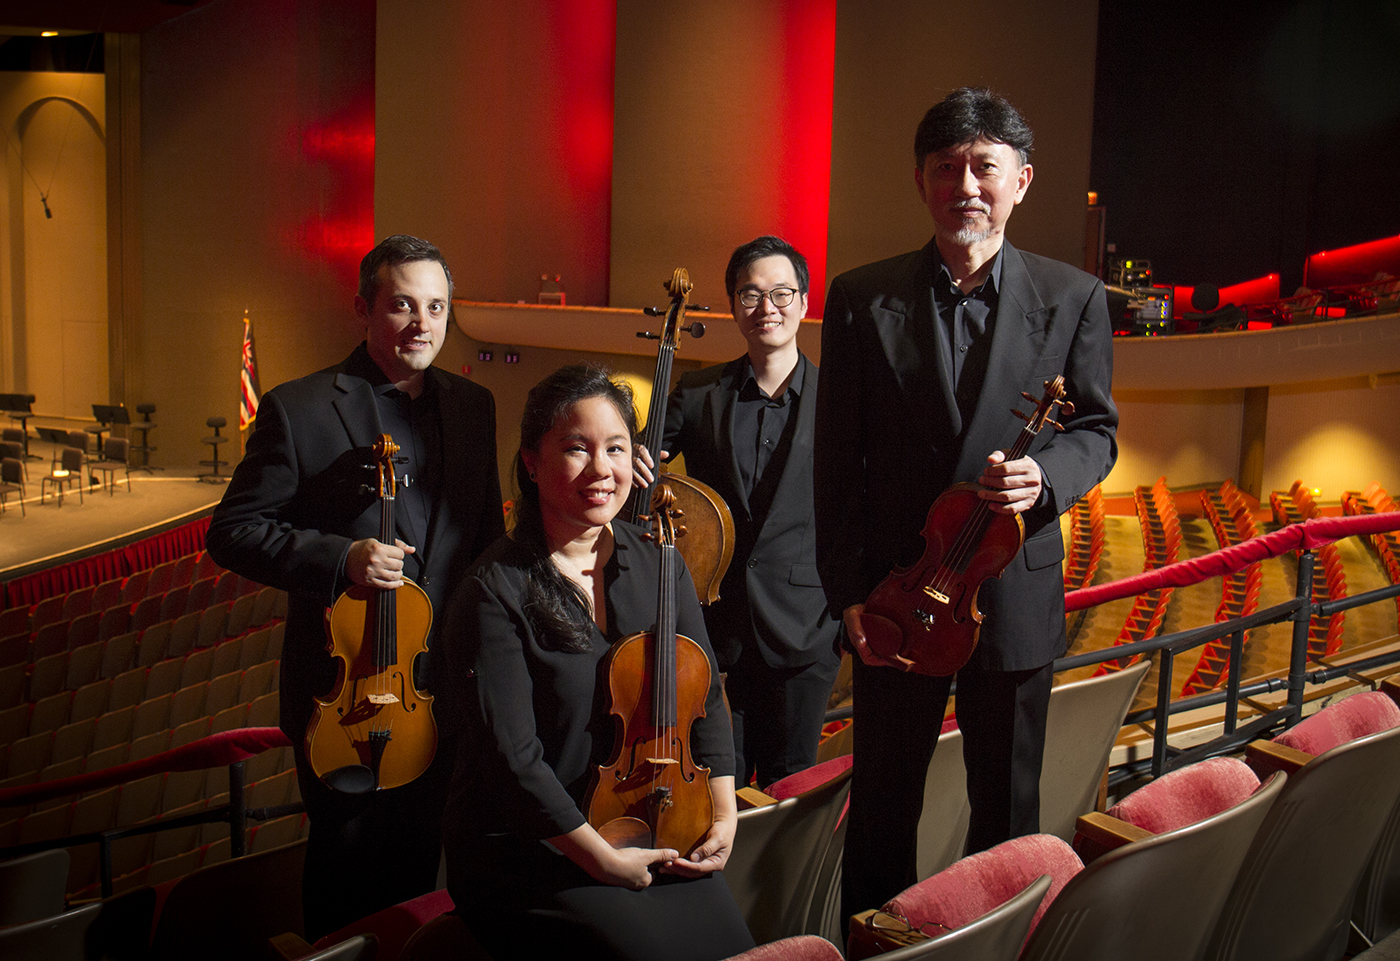 Celebrate Beethoven's 250th birthday with Chamber Music Hawaii, Oct. 22